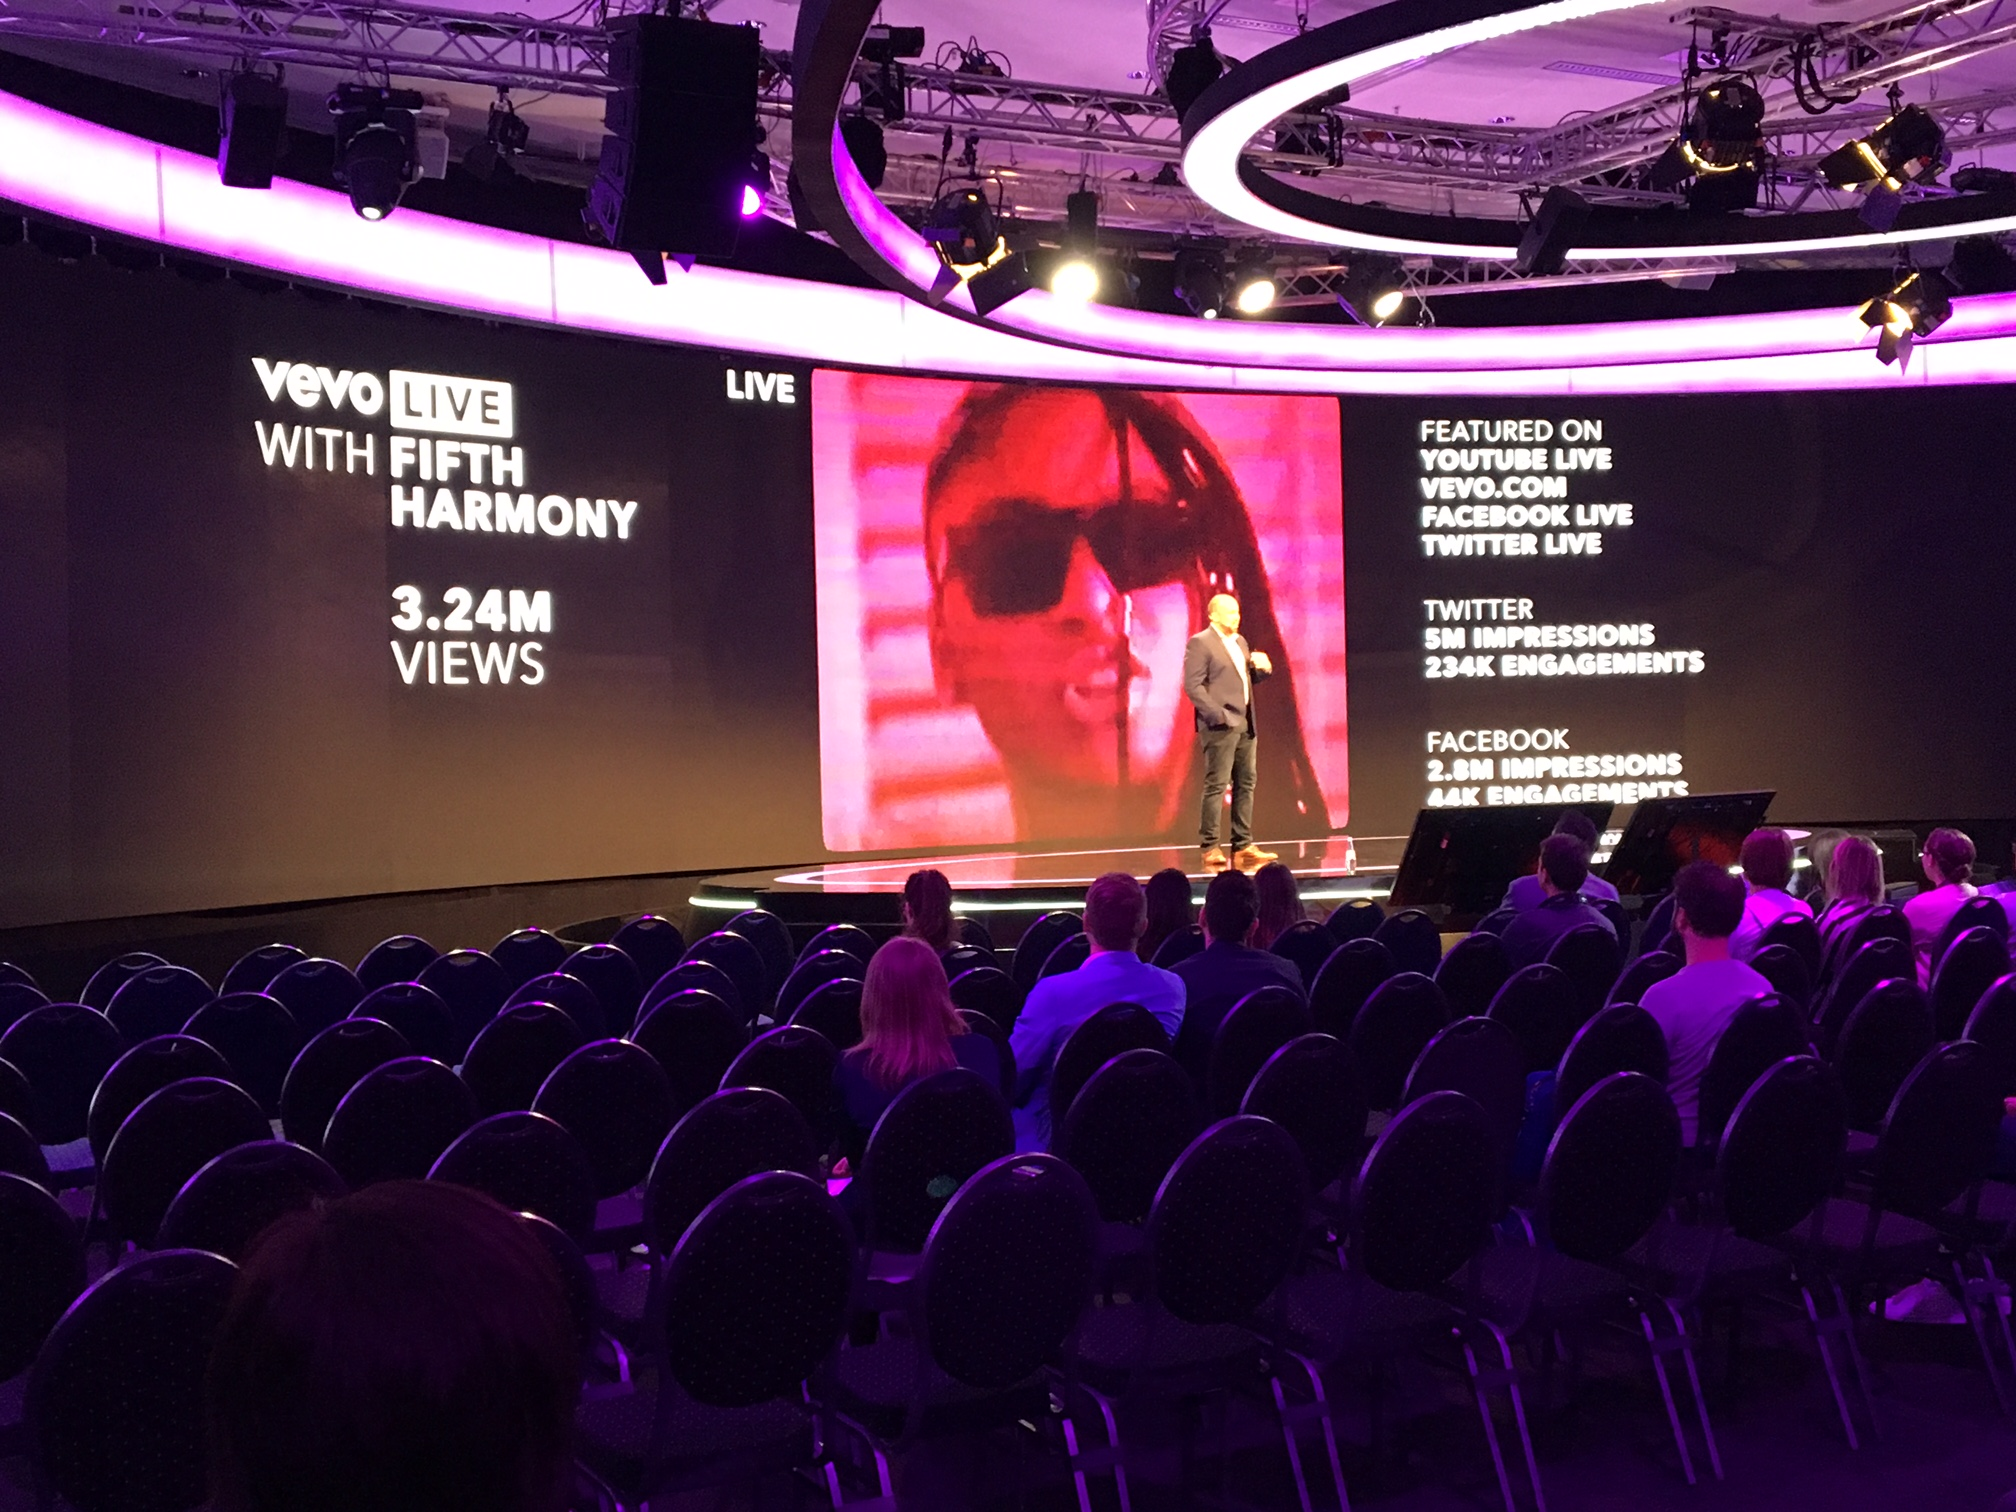 VEVO presenting the talk 'TV's tipping point: The Convergence of Digital & TV' - Dmexco 2017